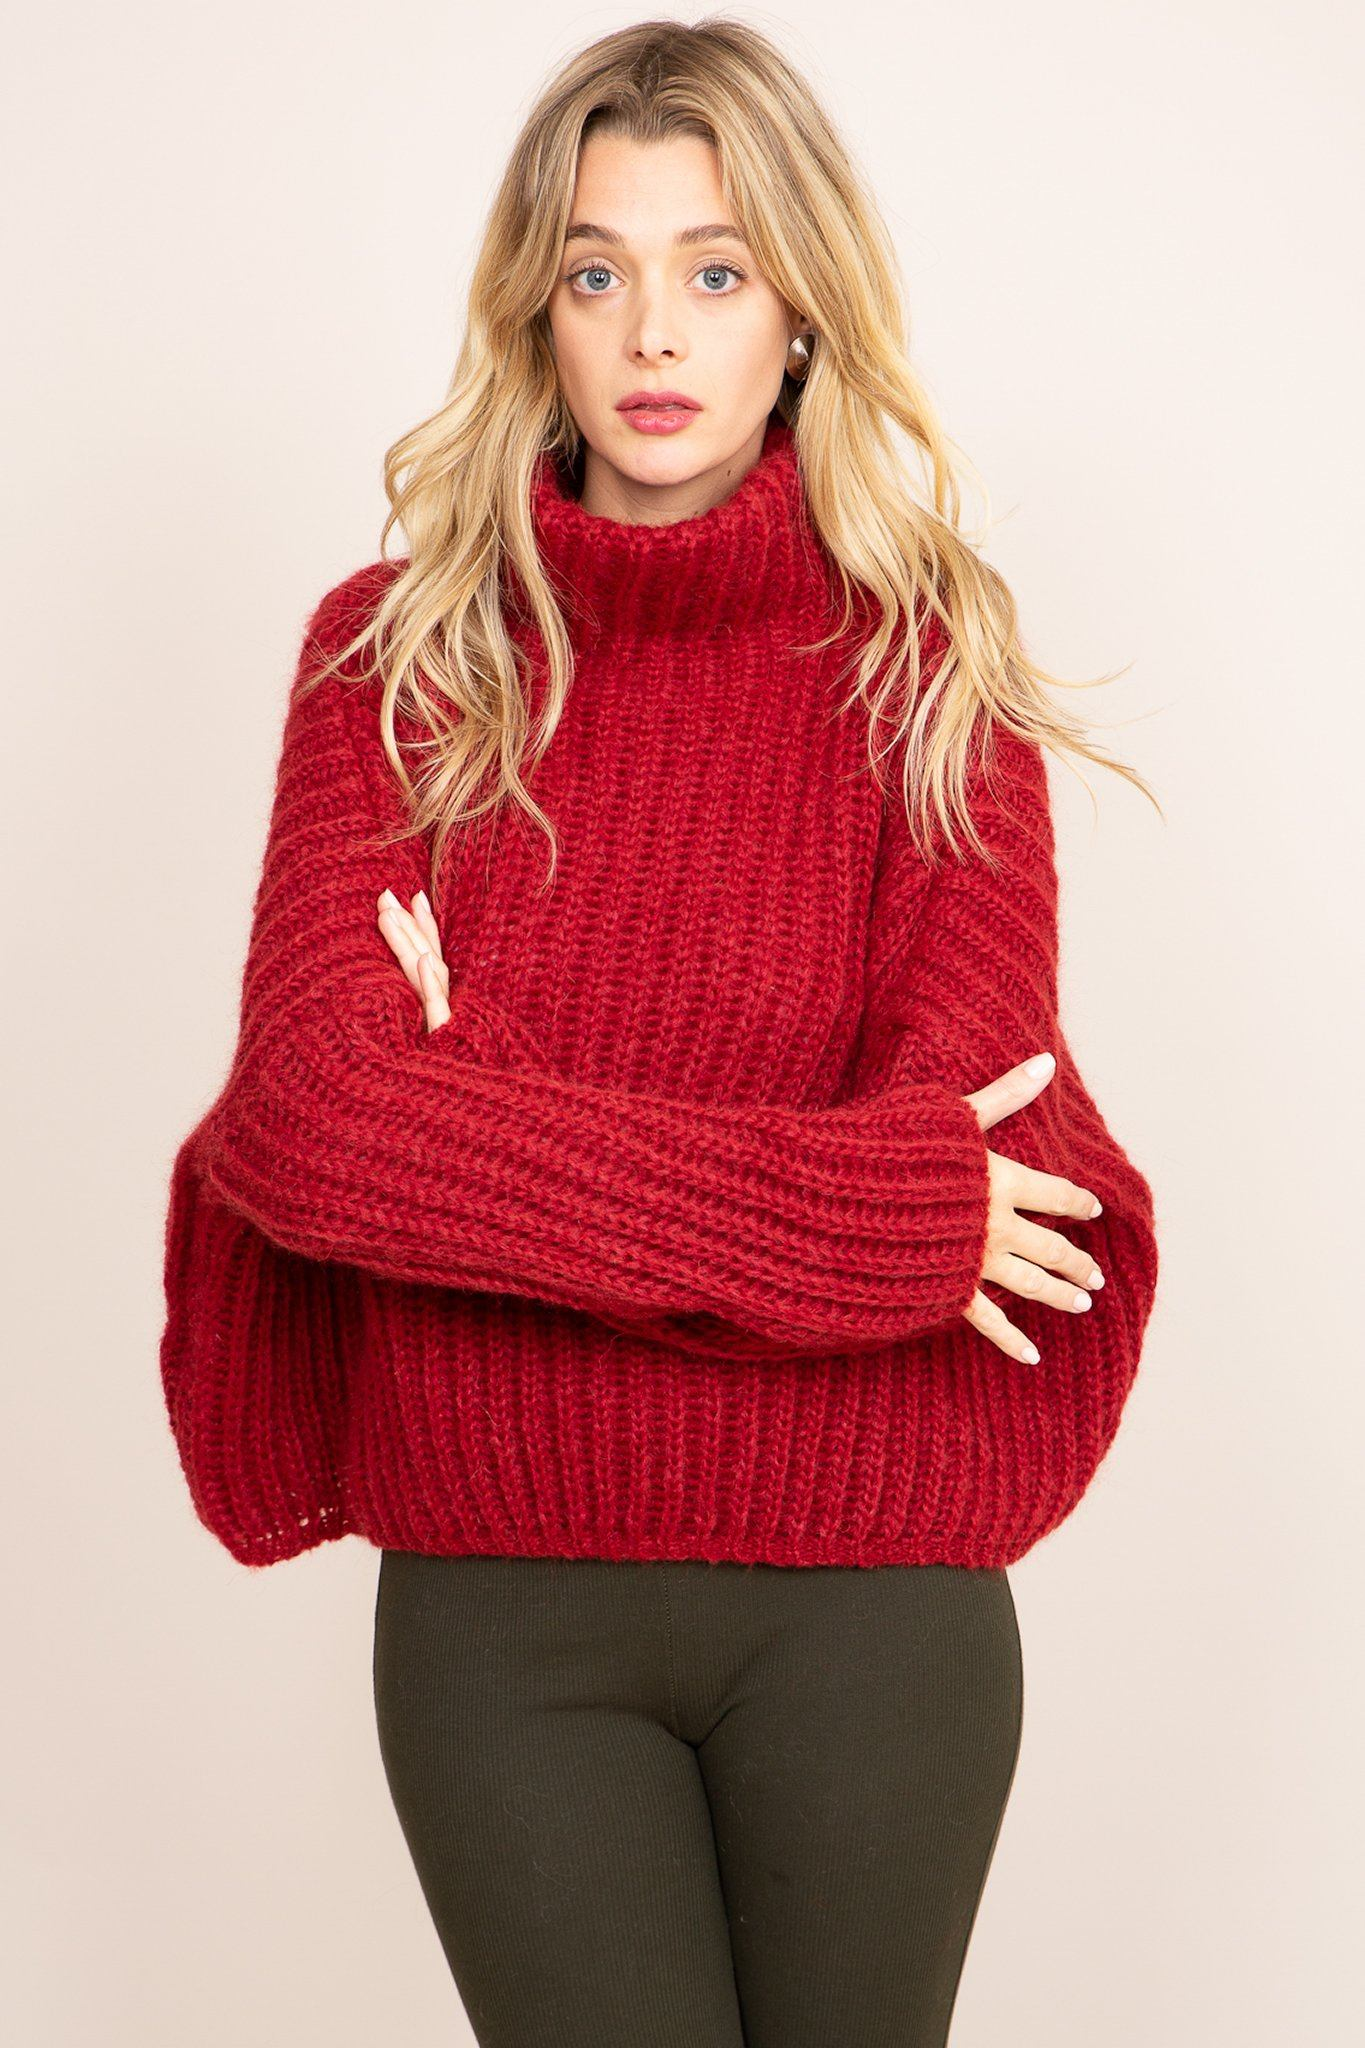 Lilou Sweater - Red, [product_type]- Poppy Field the label